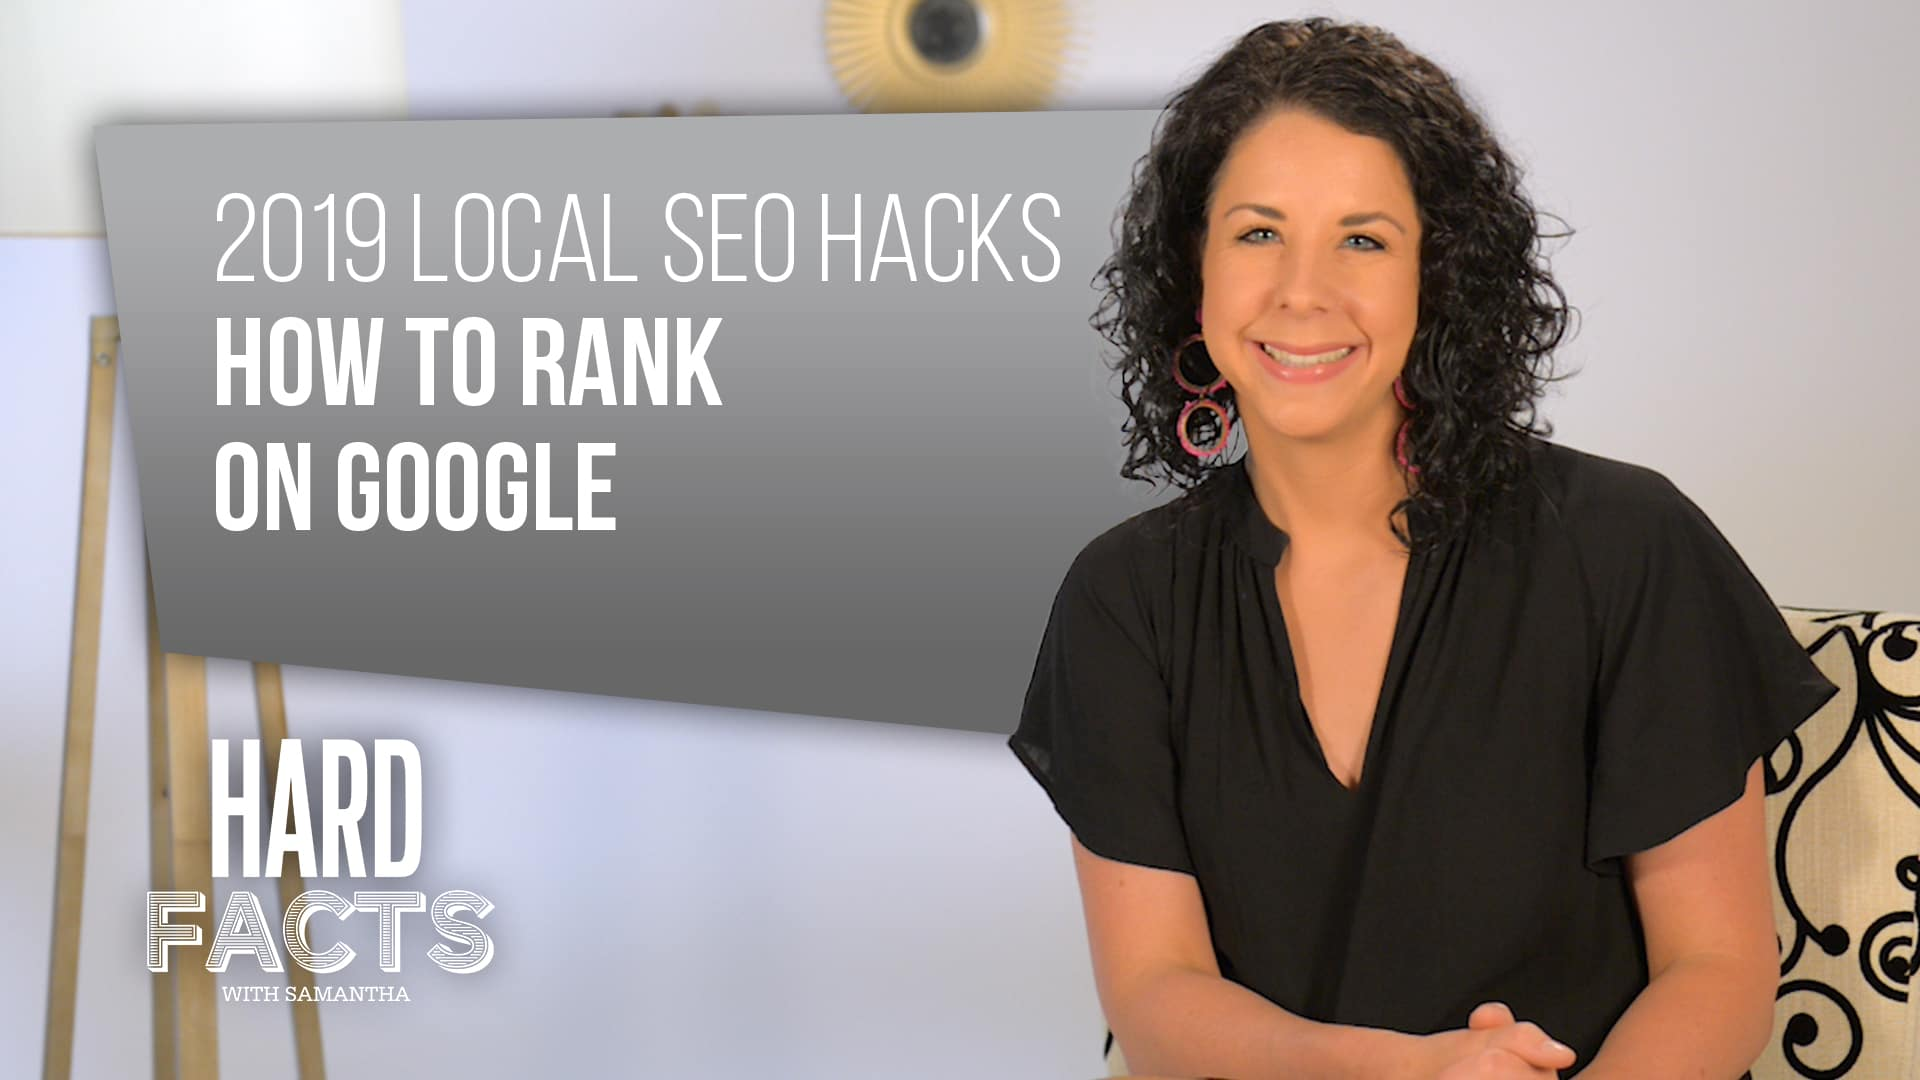 2019 Local SEO Hacks – How to Rank on Google